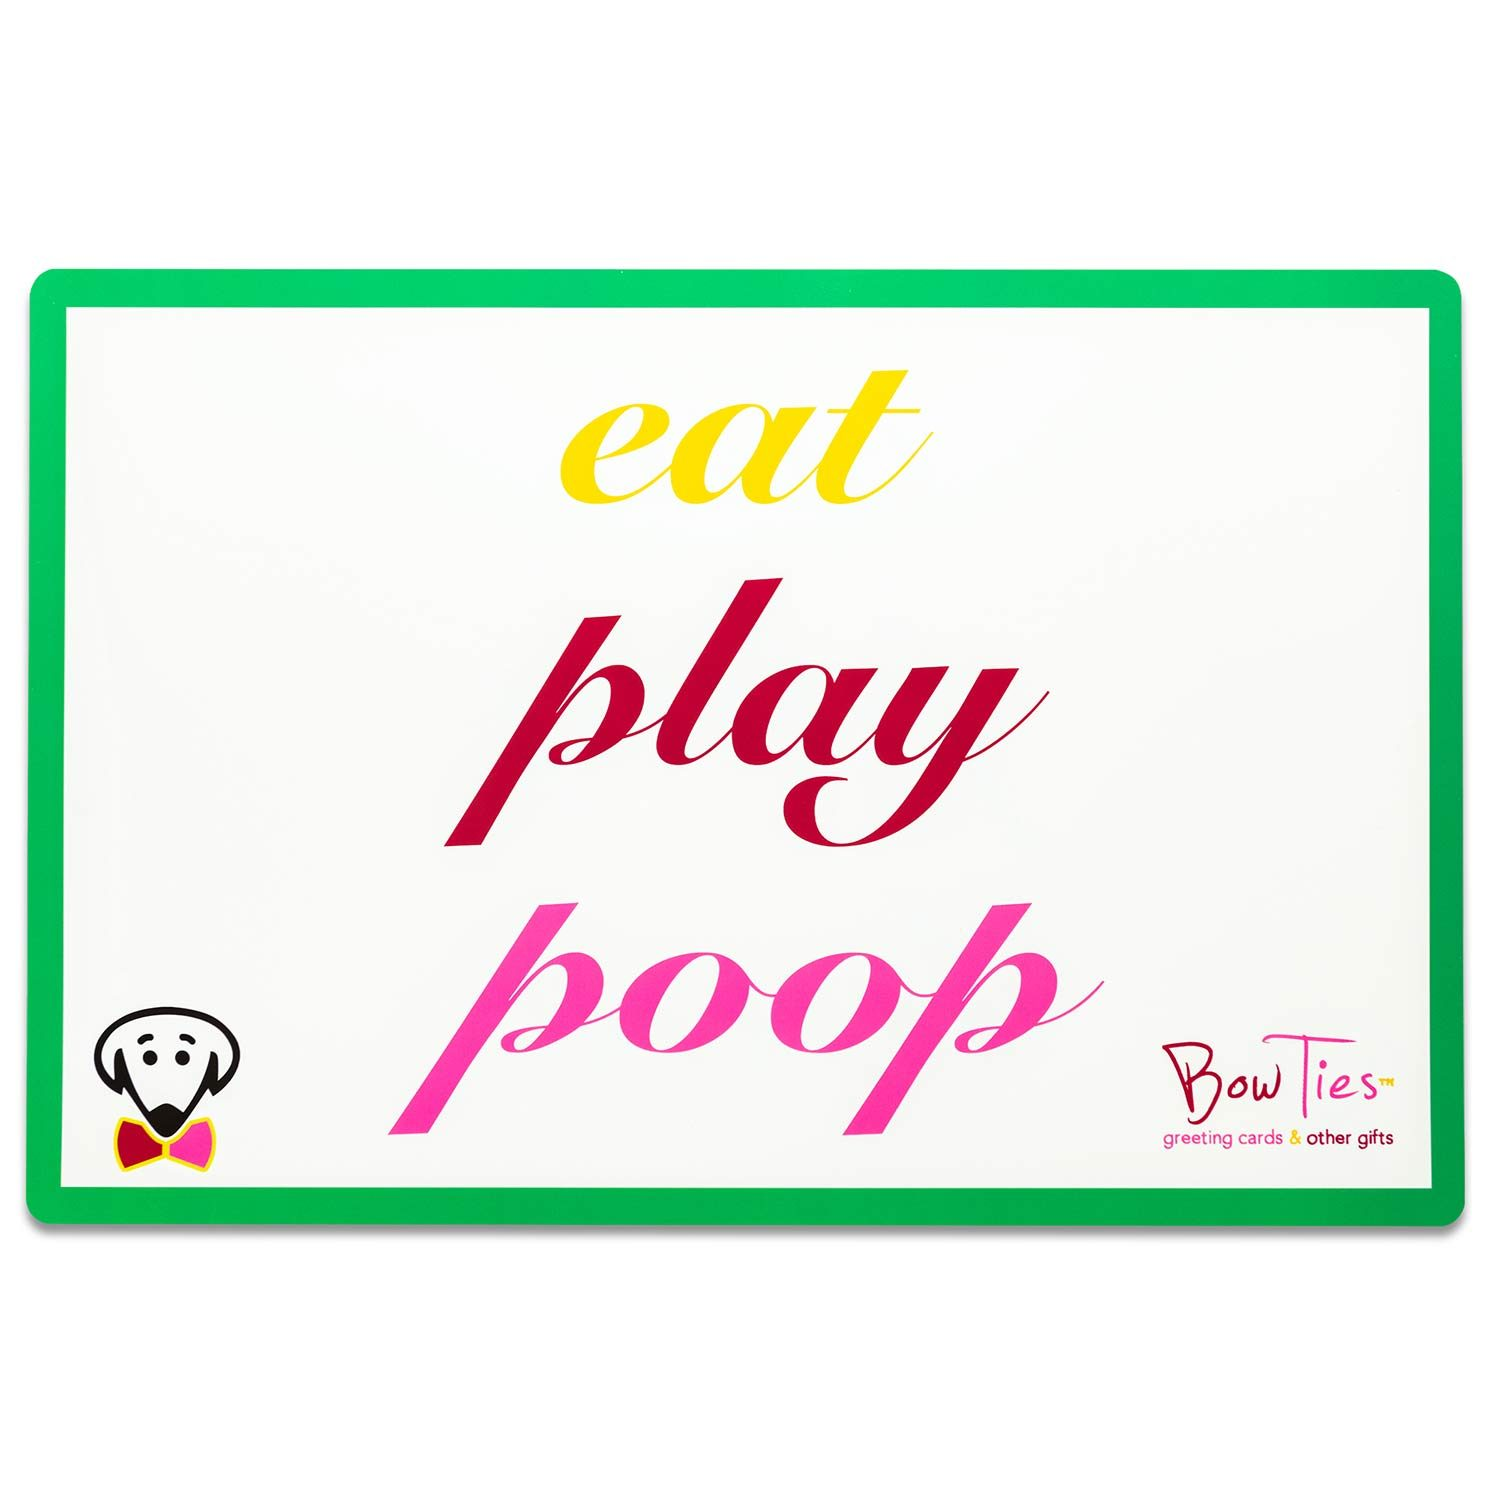 Eat Play Love pet mat (Eat Play Poop on back) by Beau Tyler